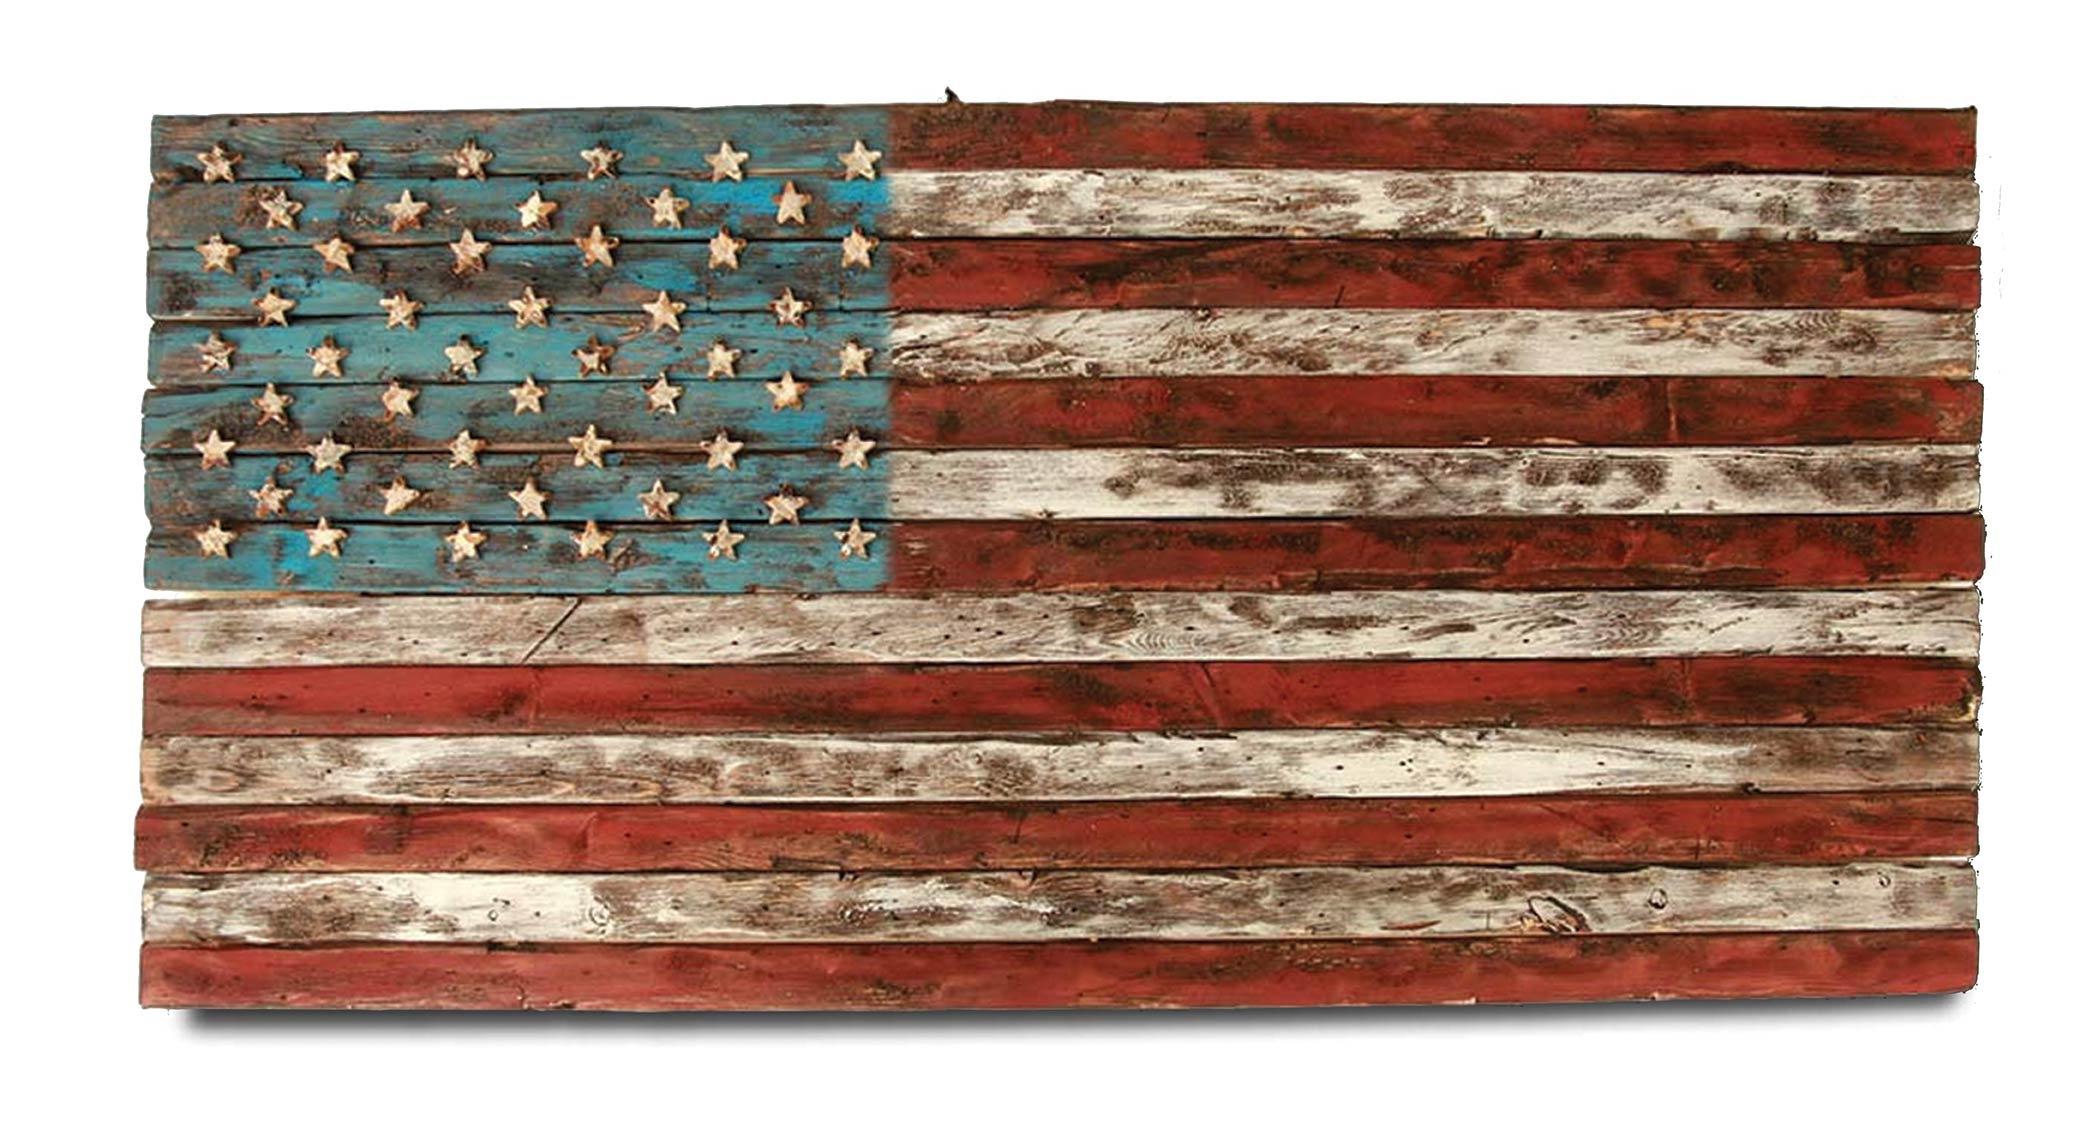 American Flag, Weathered Wood, One Of A Kind, 3D, Wooden, Vintage, Art,  Distressed, Red, Blue, White Patriotic, Wall Art, Usa, Home Decor Pertaining To American Flag 3D Wall Decor (Image 14 of 30)